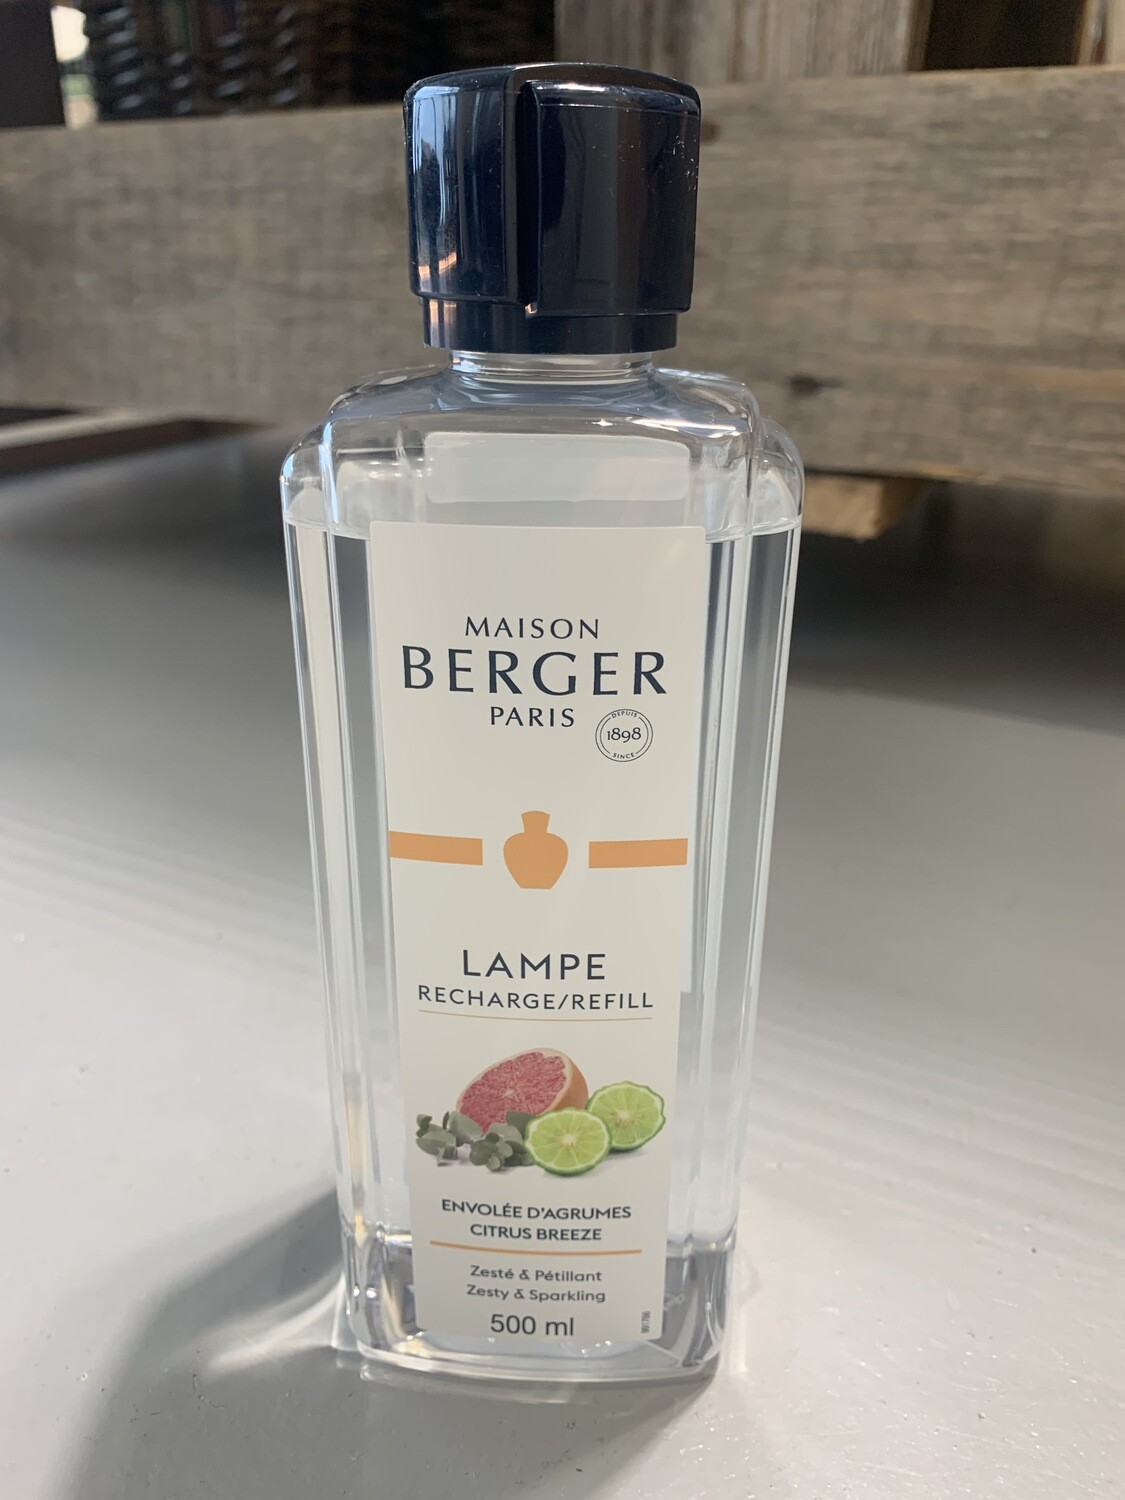 Maison Berger Lampeolie - Citrus Breeze (500ml)